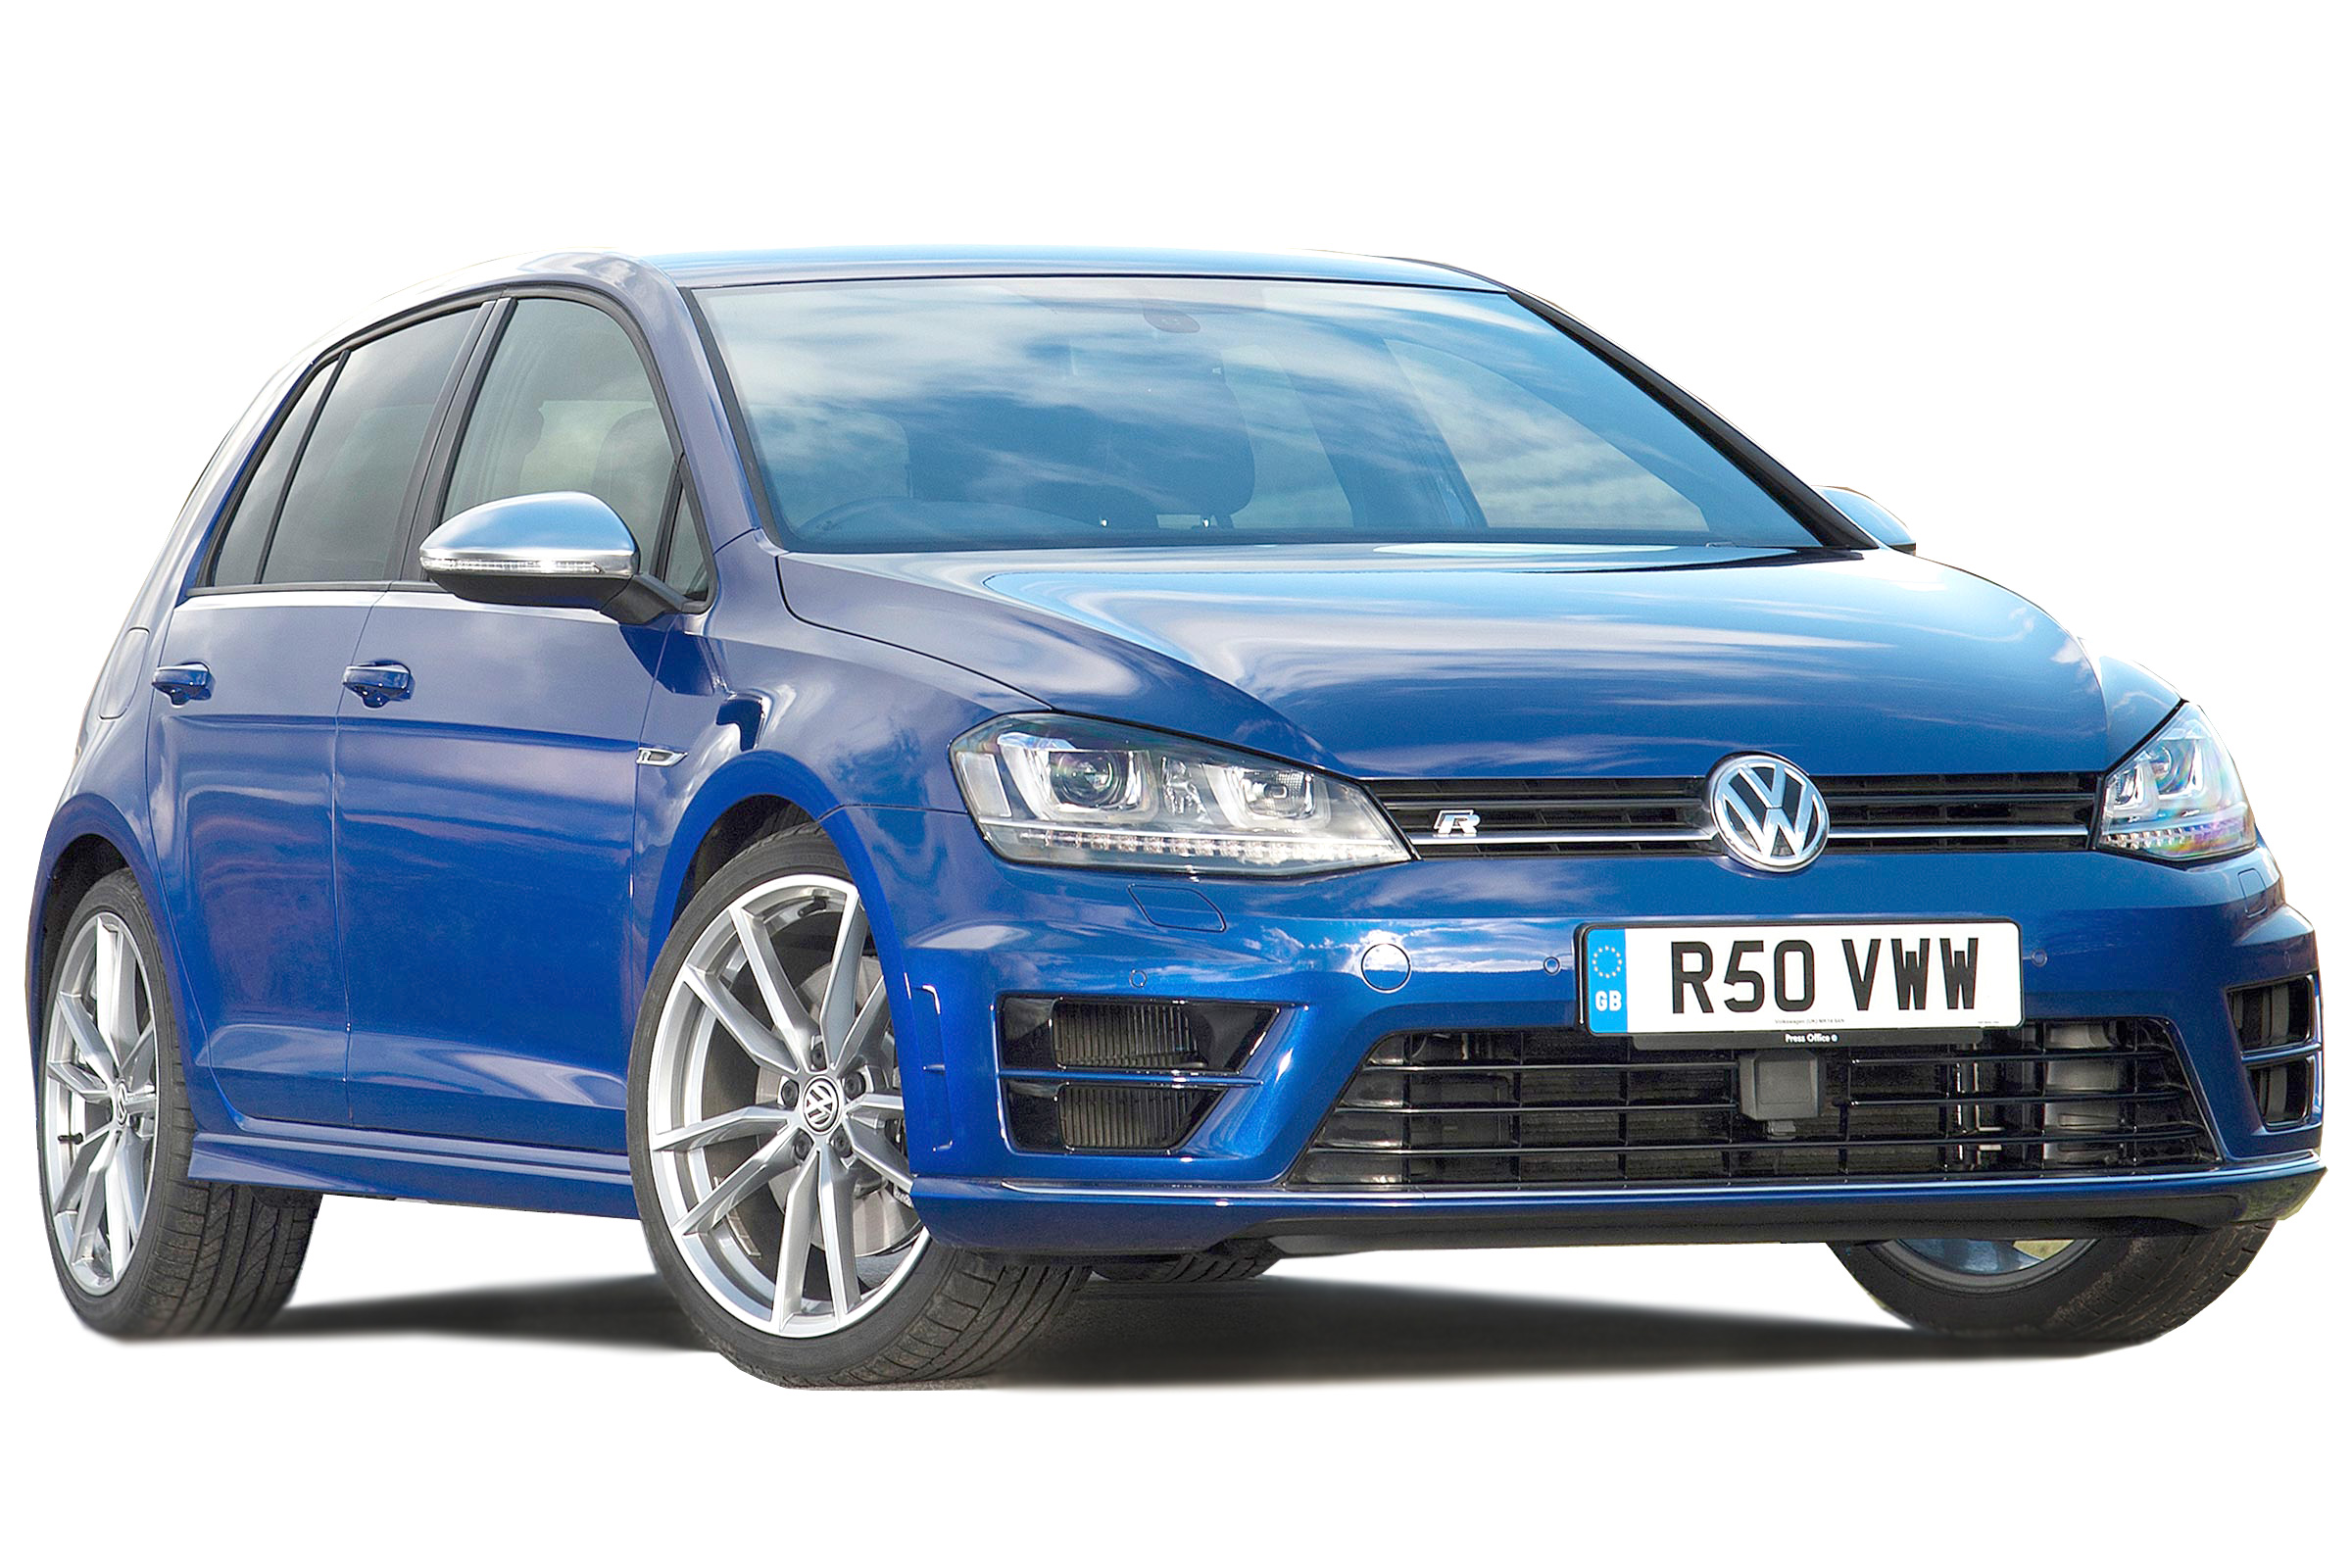 Volkswagen Golf R Hatchback Owner Reviews Mpg Problems Reliability 2020 Review Carbuyer